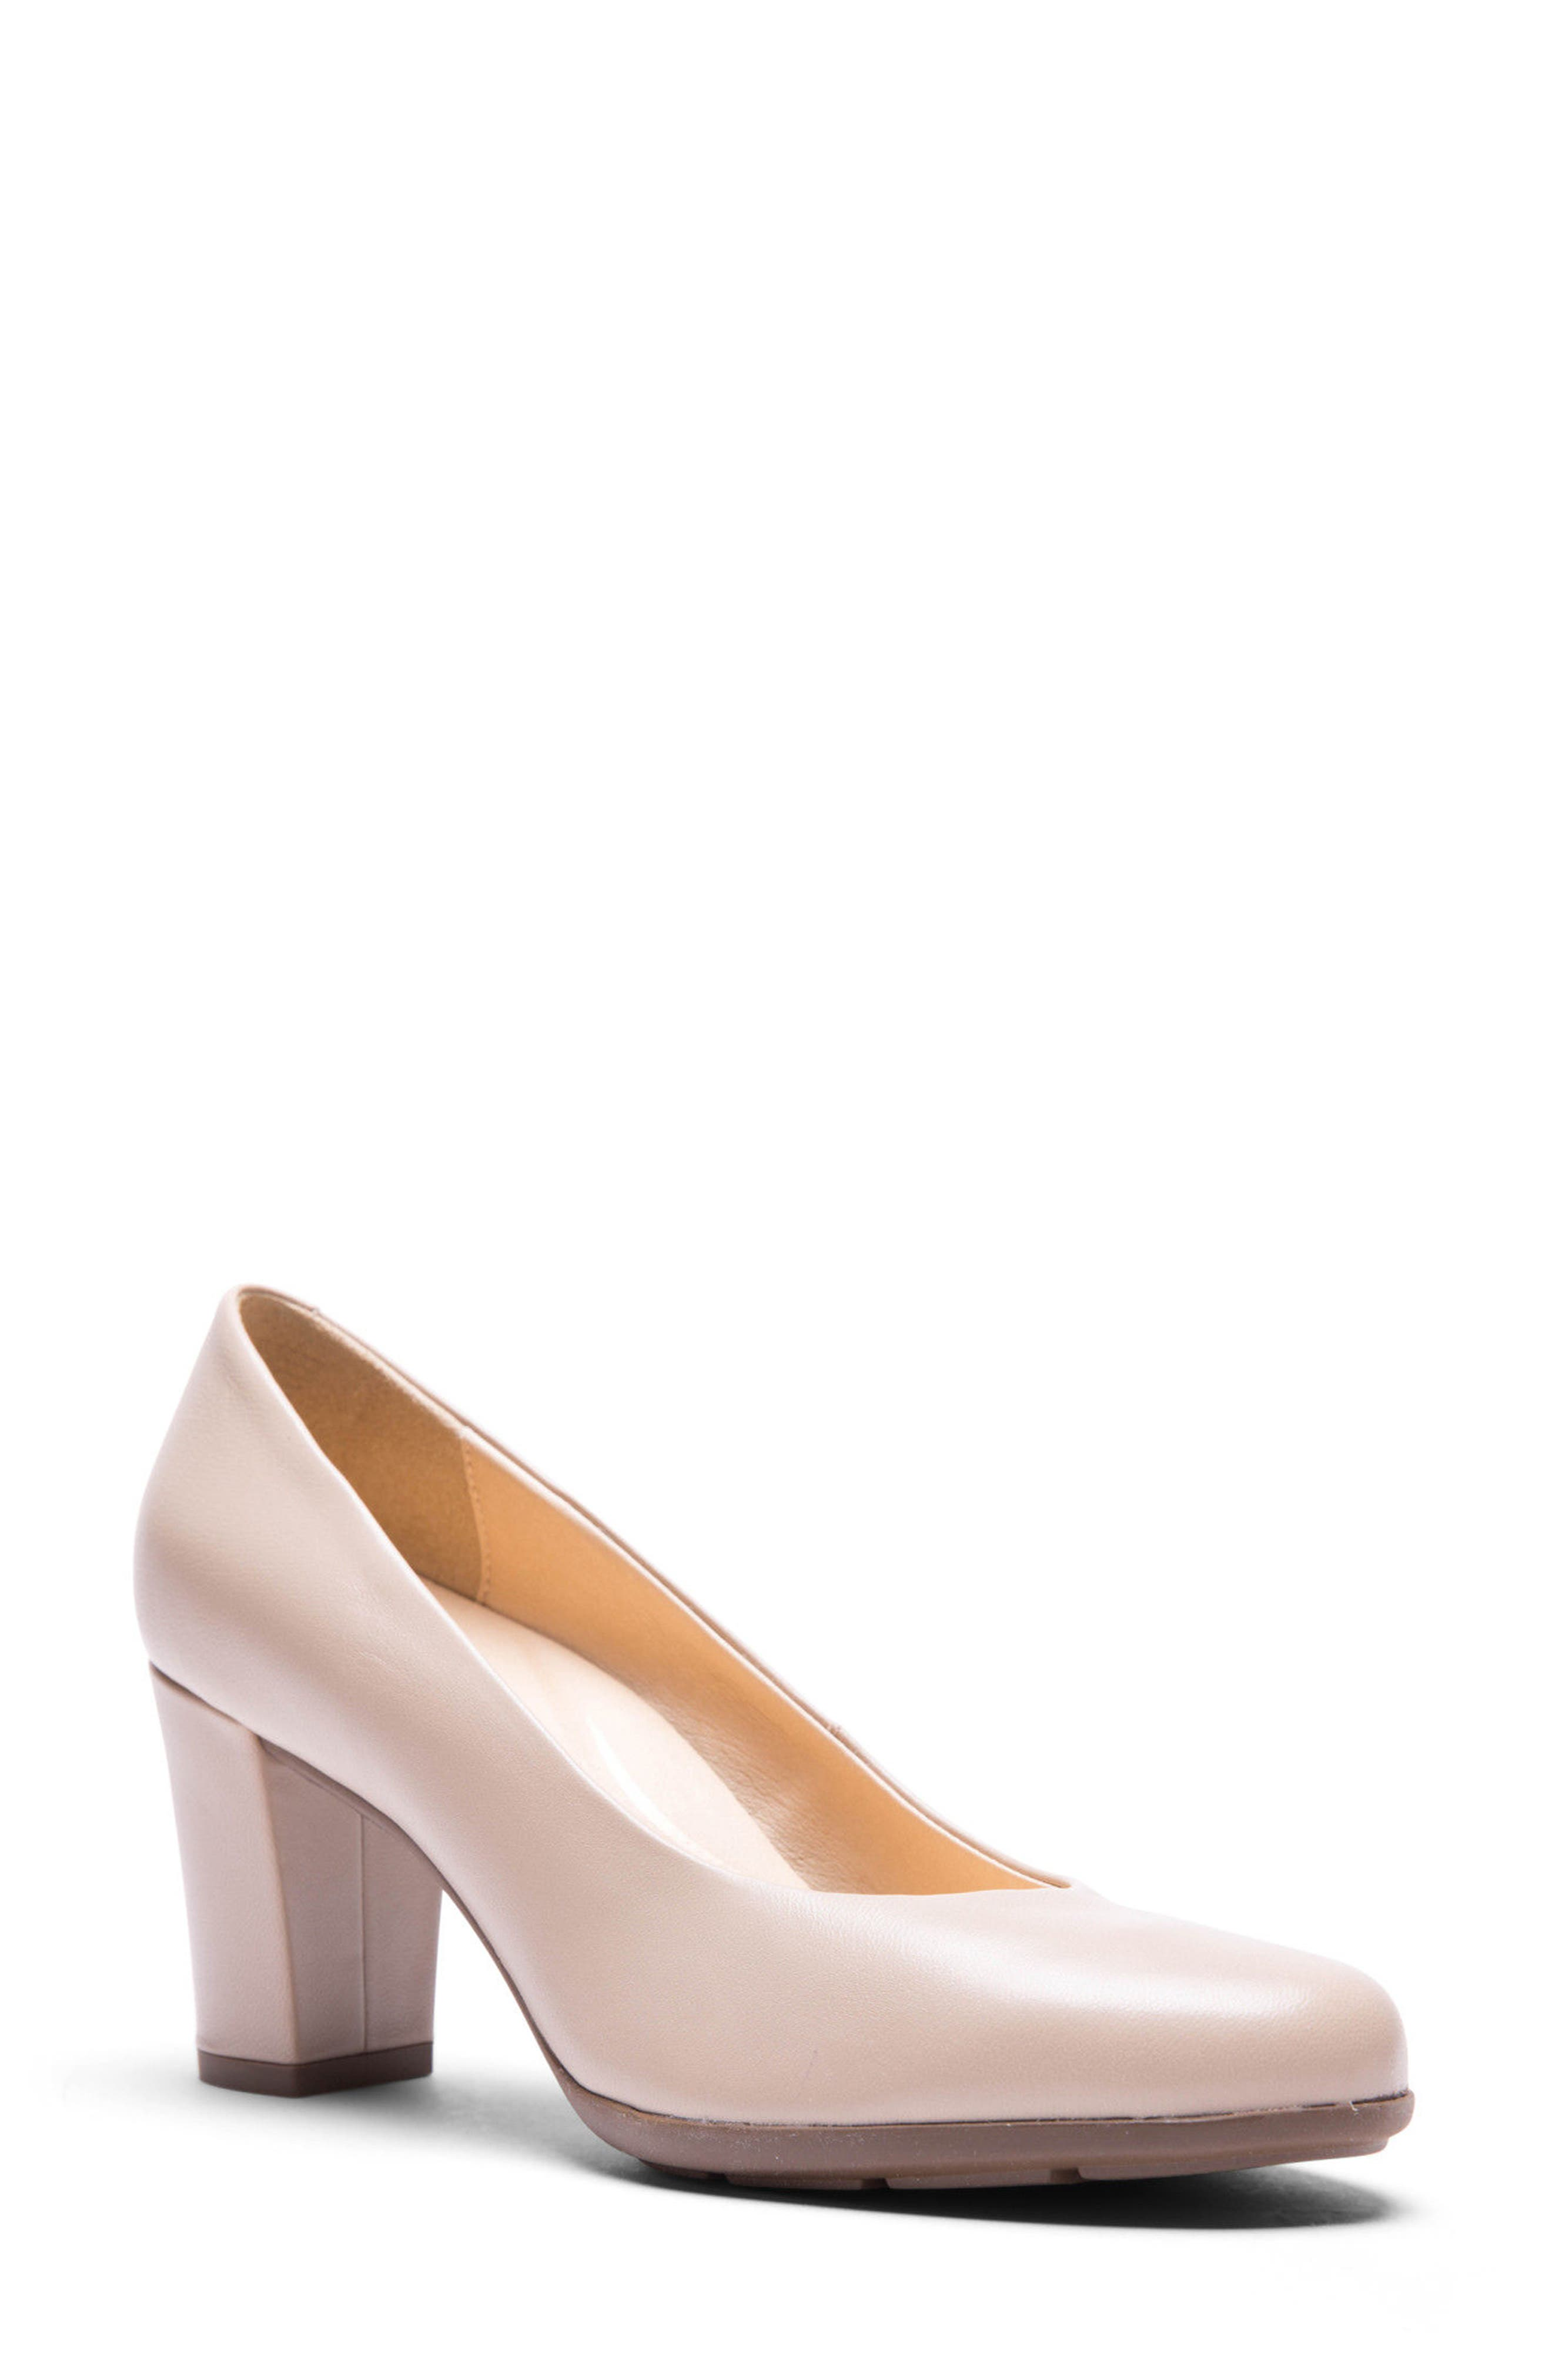 Annya Pump,                         Main,                         color, Beige Leather